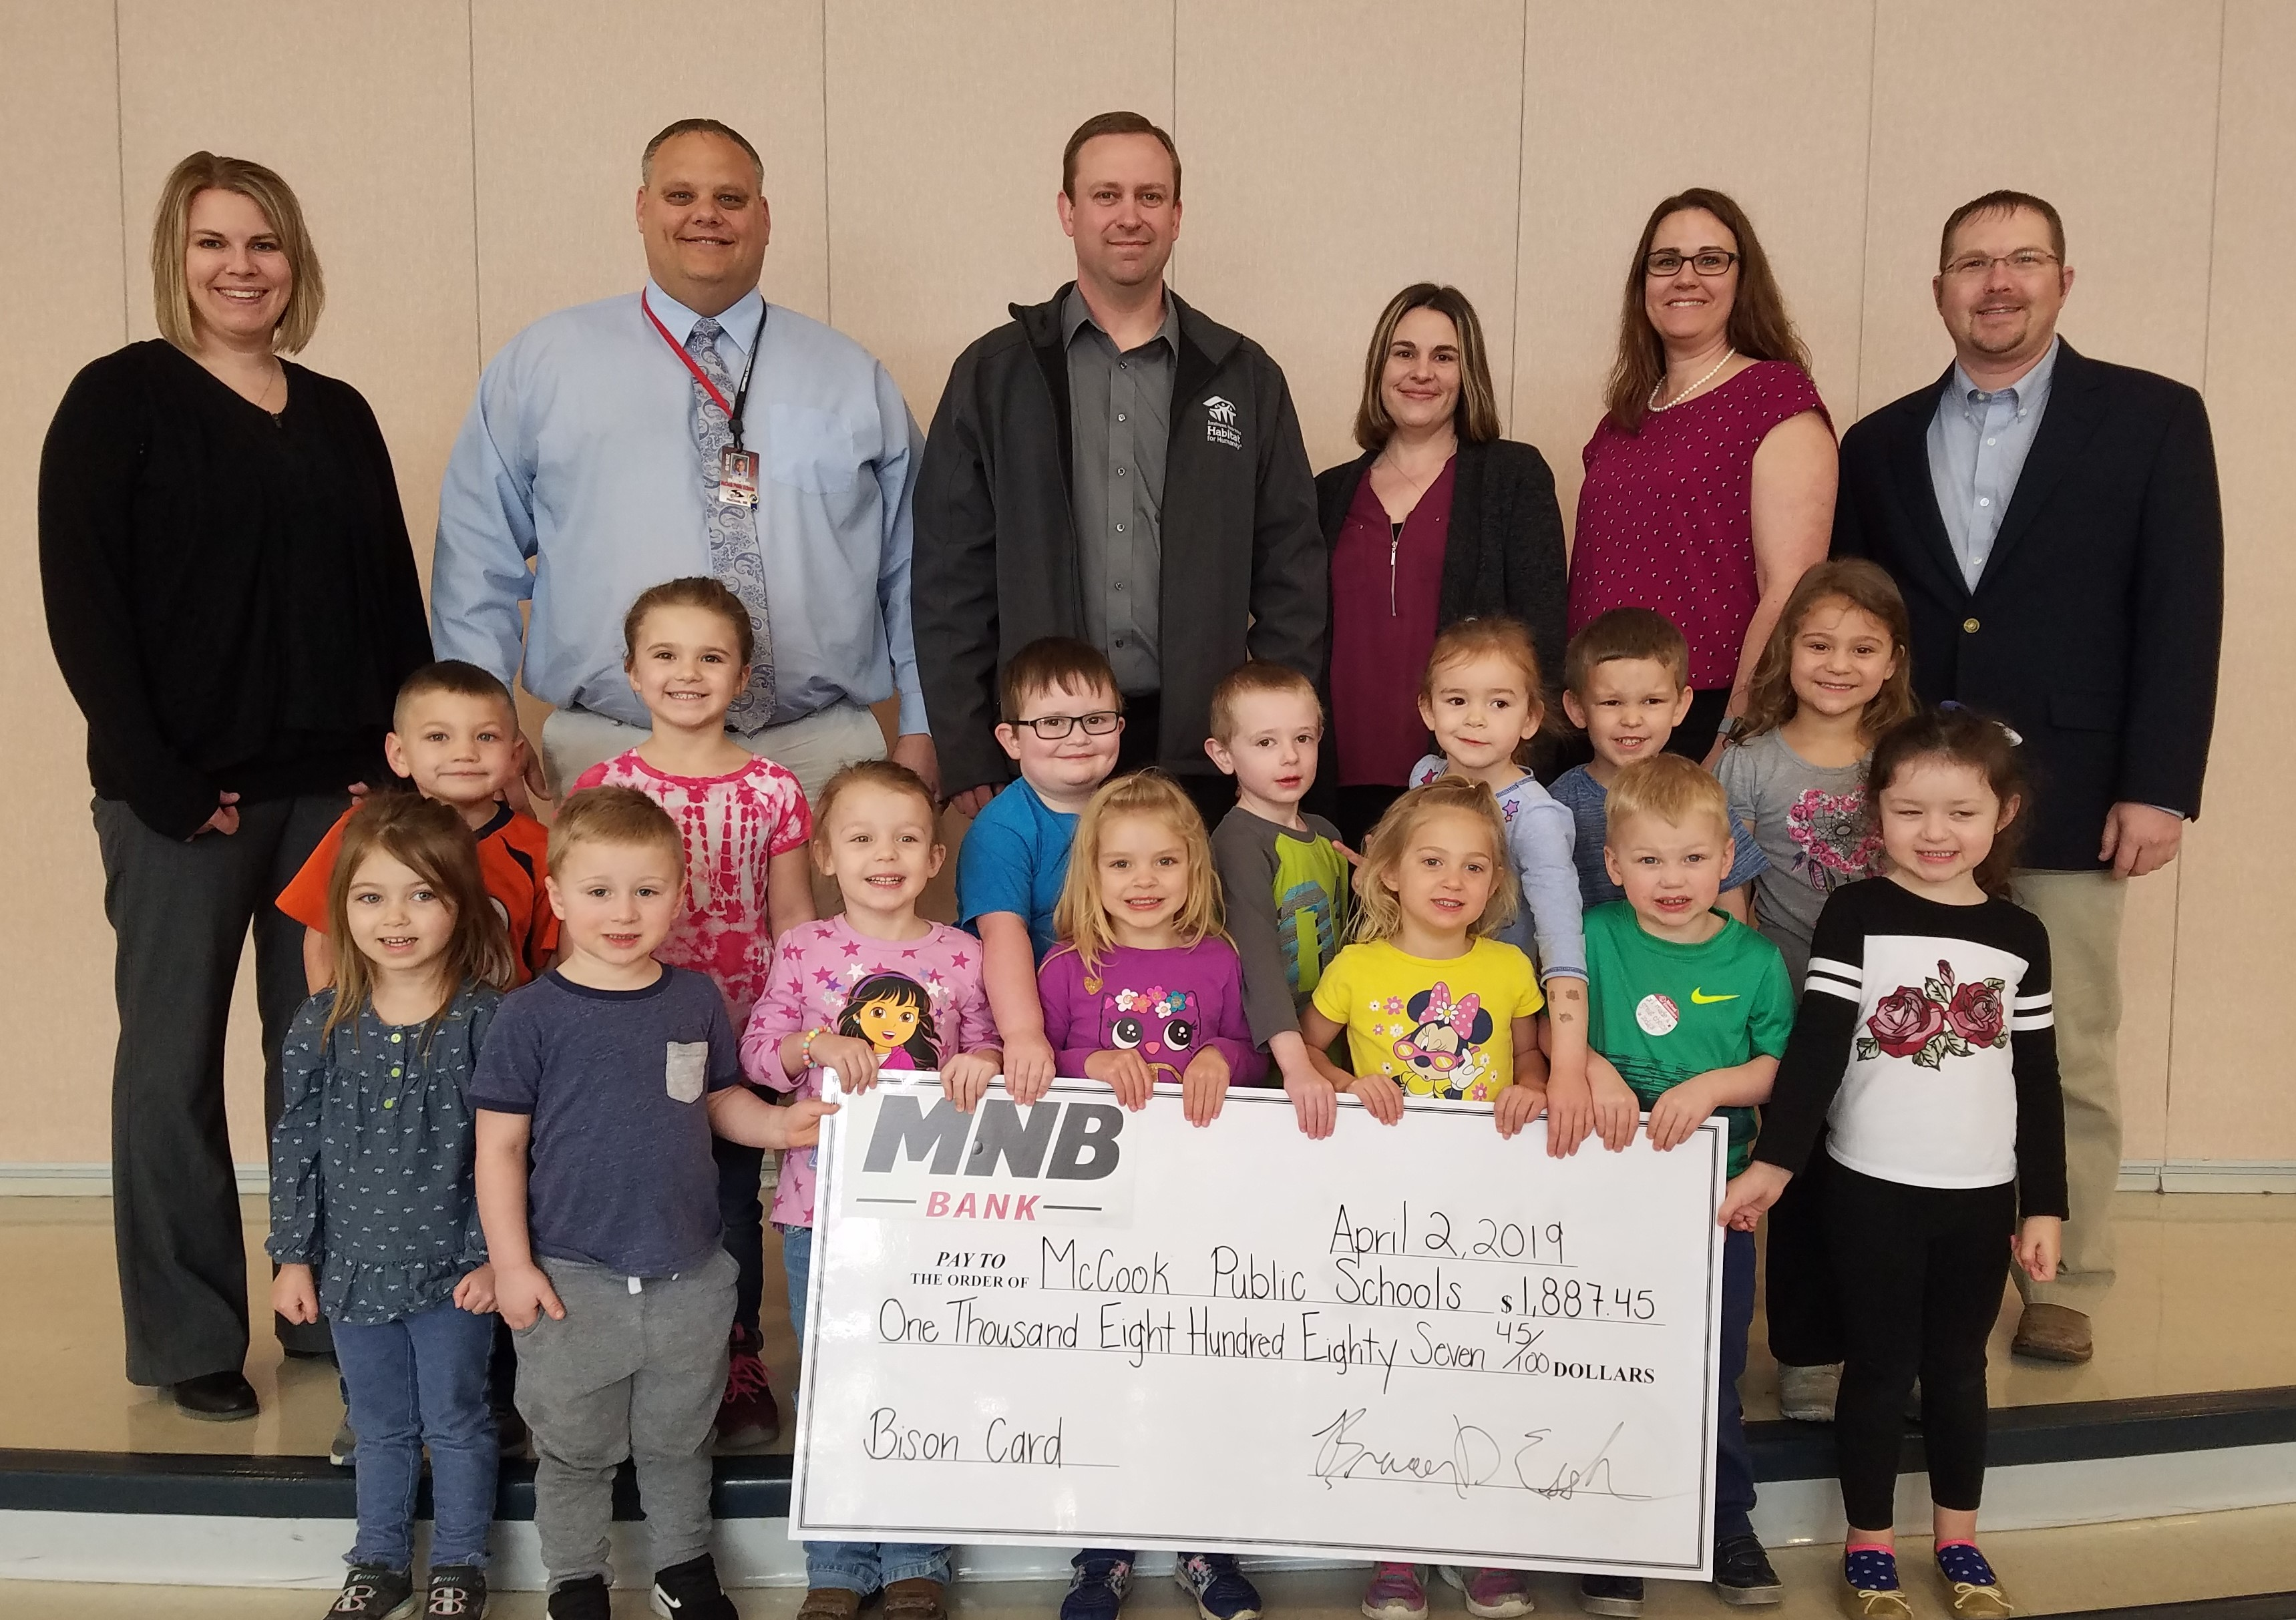 MNB Bison Debit Card Donation to McCook Public Schools